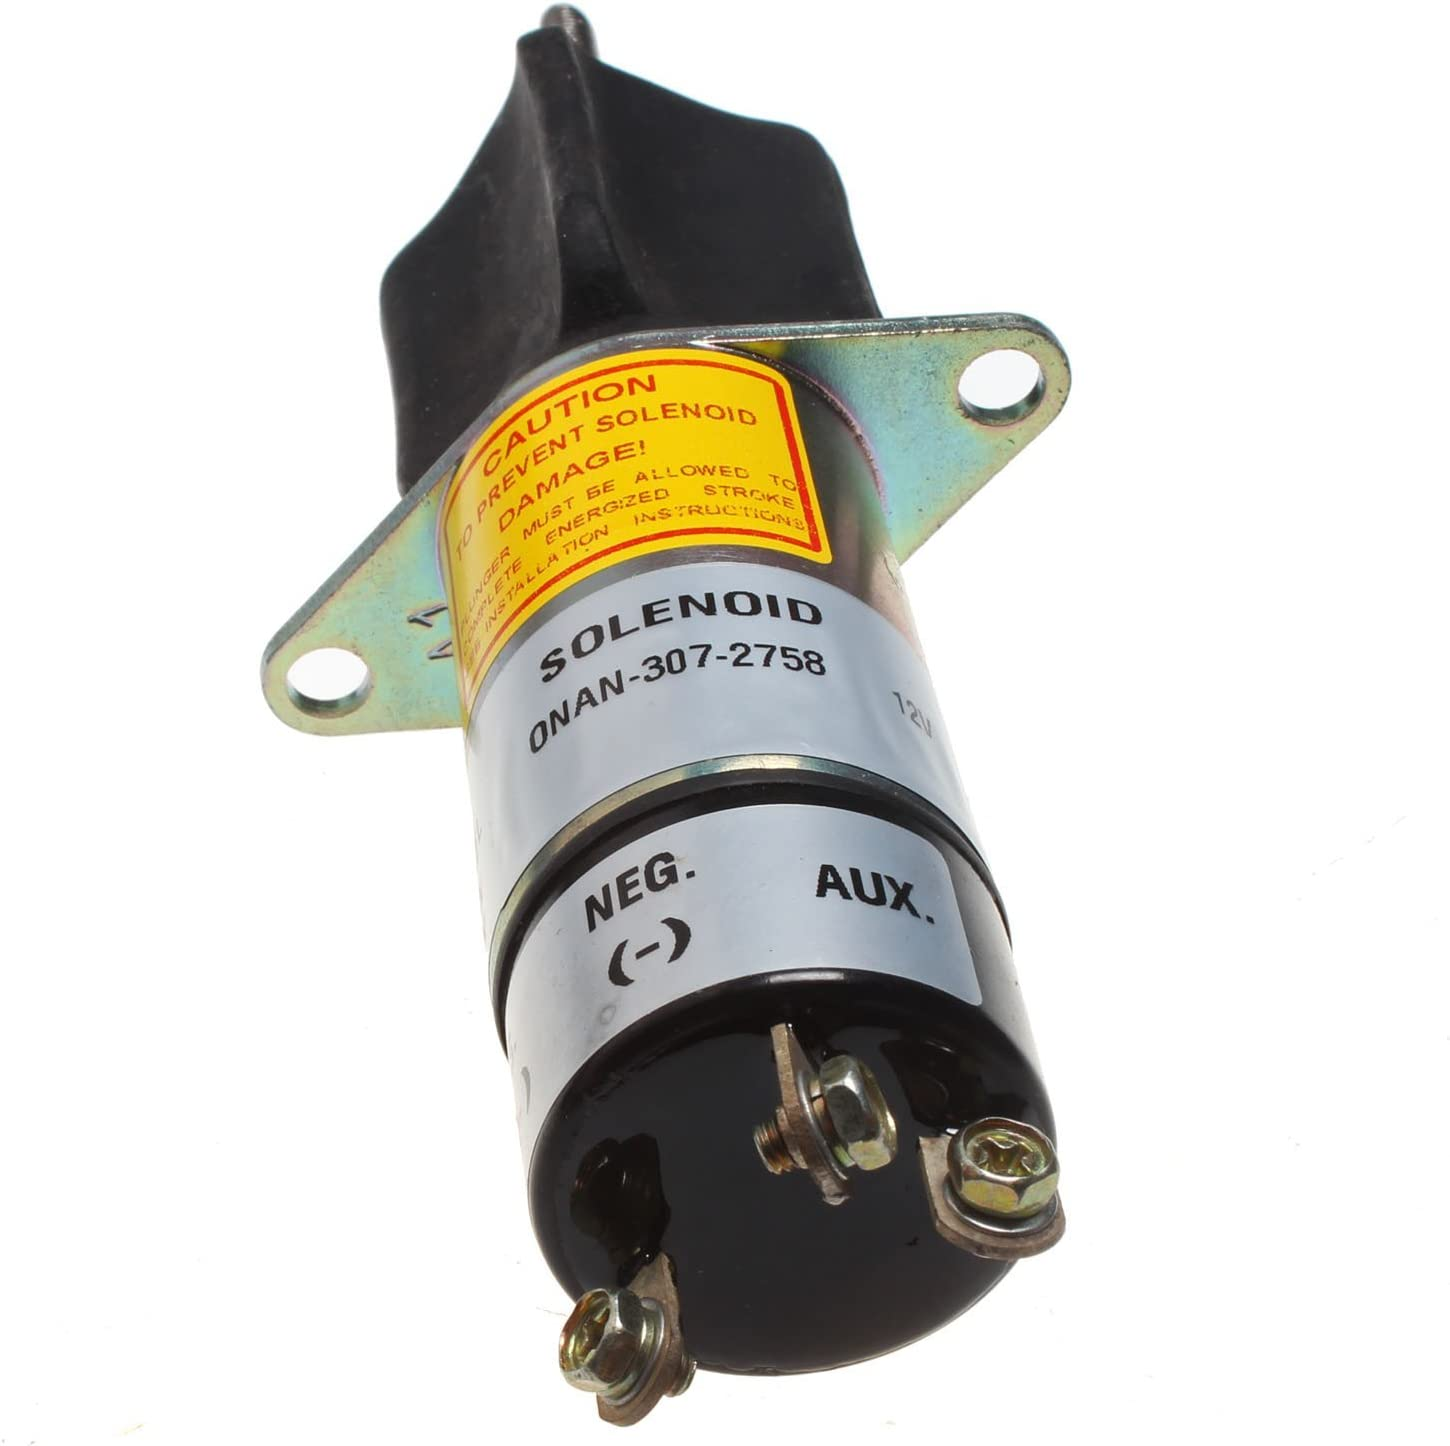 Mover Parts Solenoid 307-2758 w//Three Terminal 12V for Miller Welders,AEAD 200LE,Legend etc